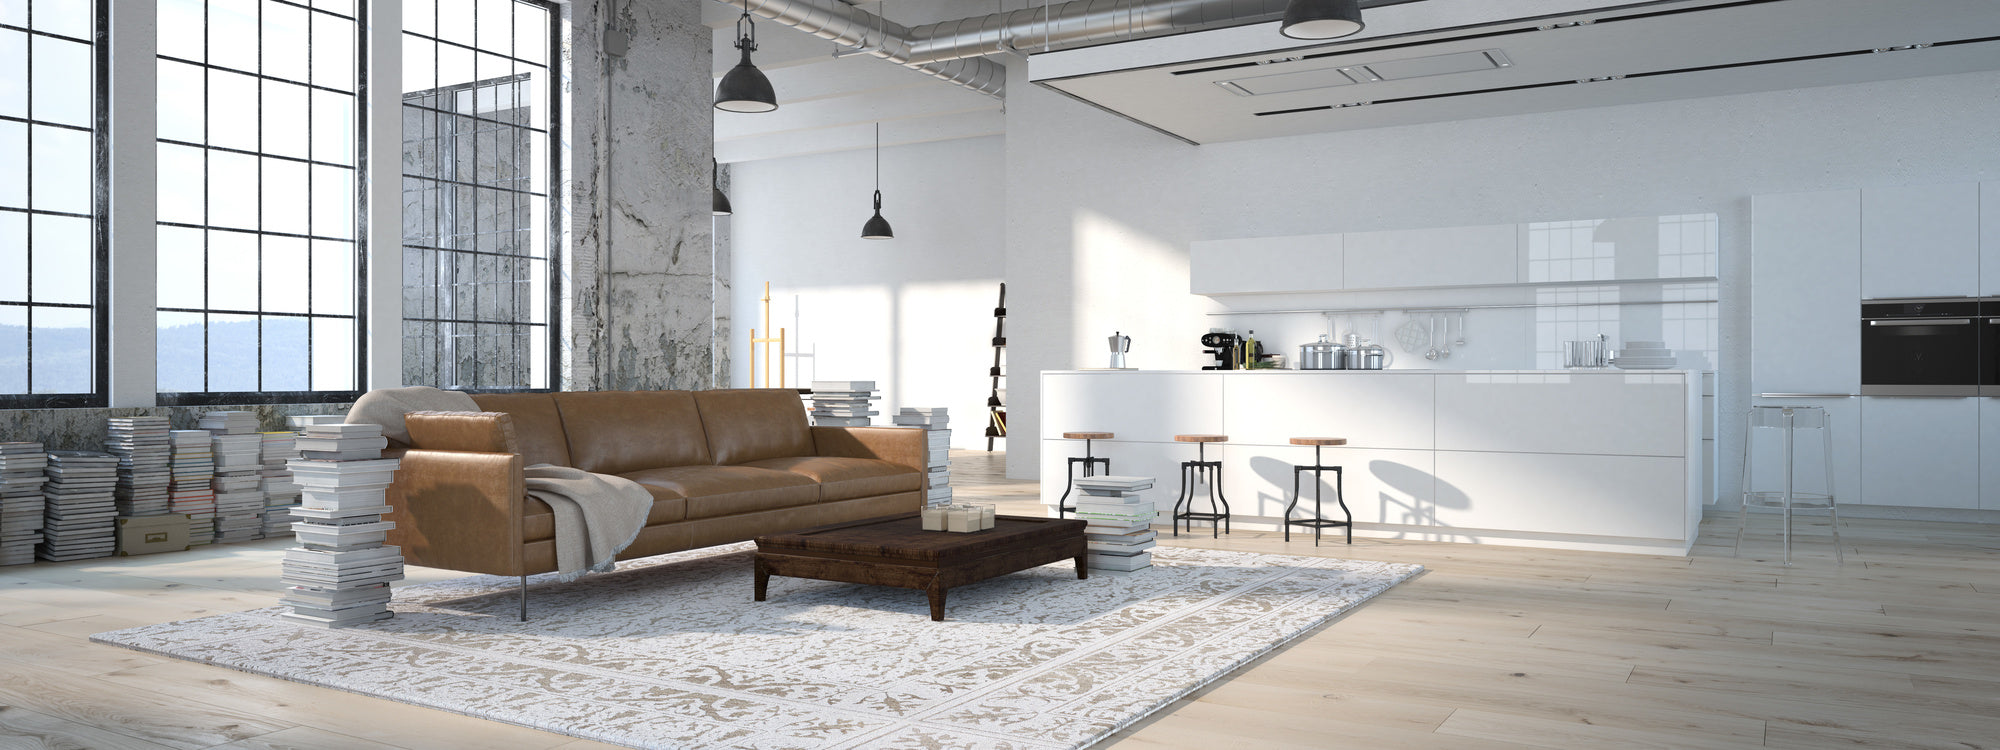 6 Interior Design Trends To Look Out For In 2019 Themayacompany